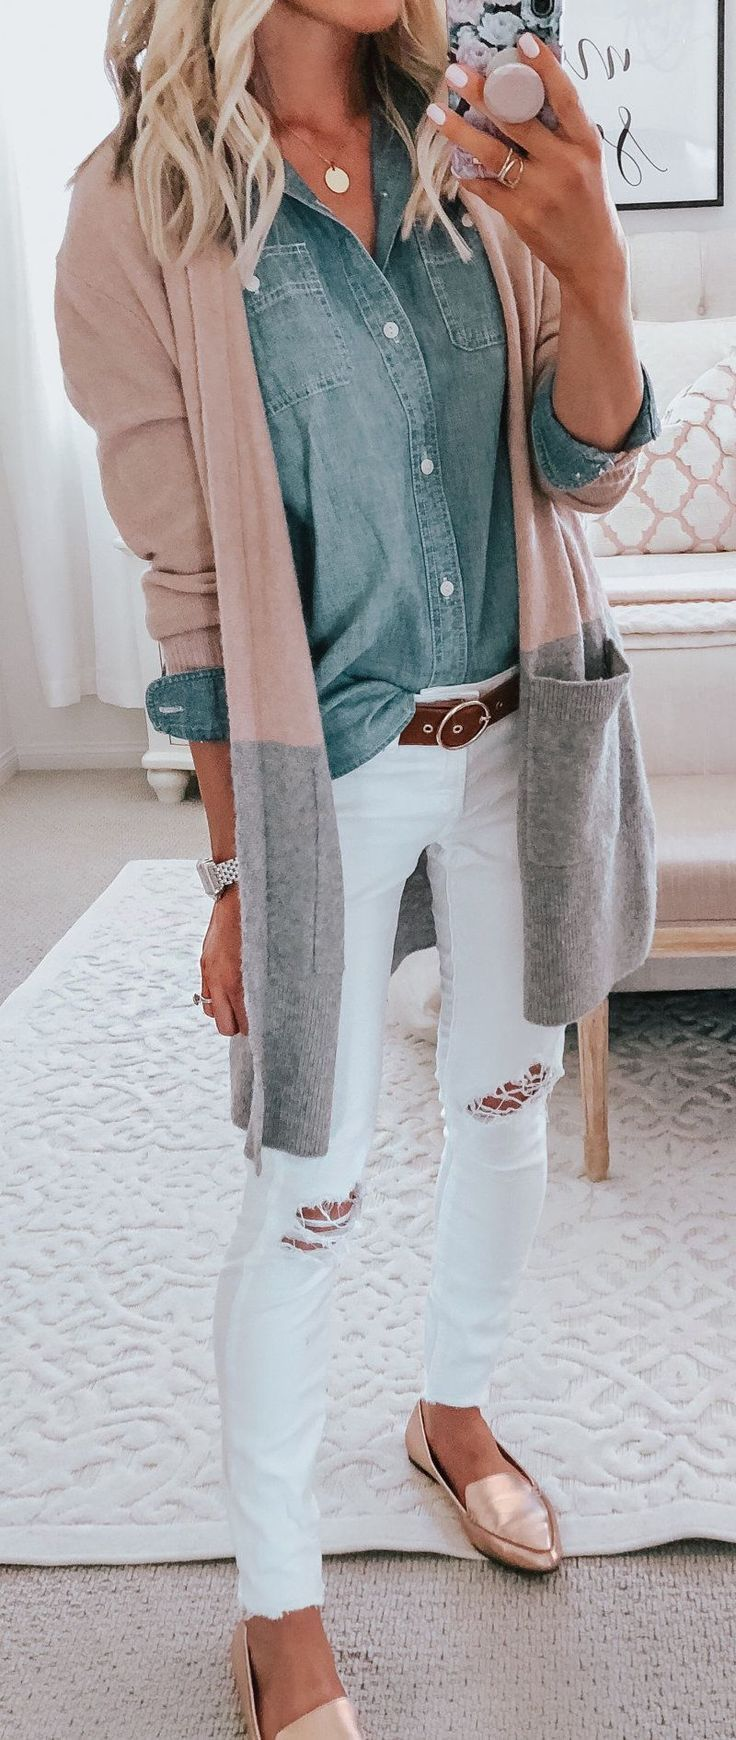 Fall Outfits With Long Cardigans 2